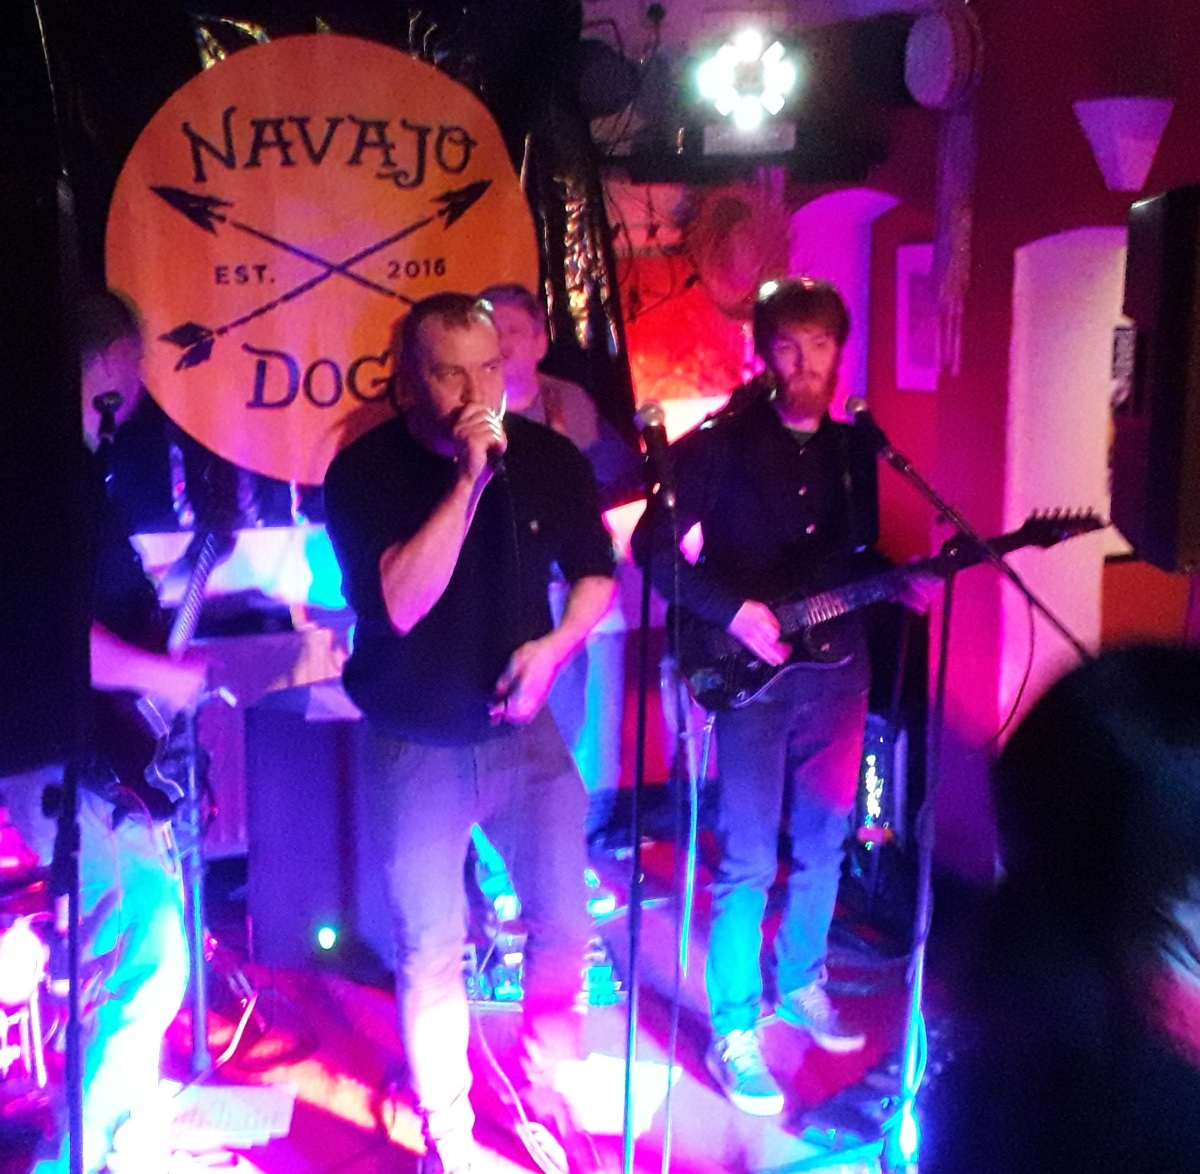 REVIEW – Navajo Dogs @ The Southgate, Devizes –Saturday 8th February 2020